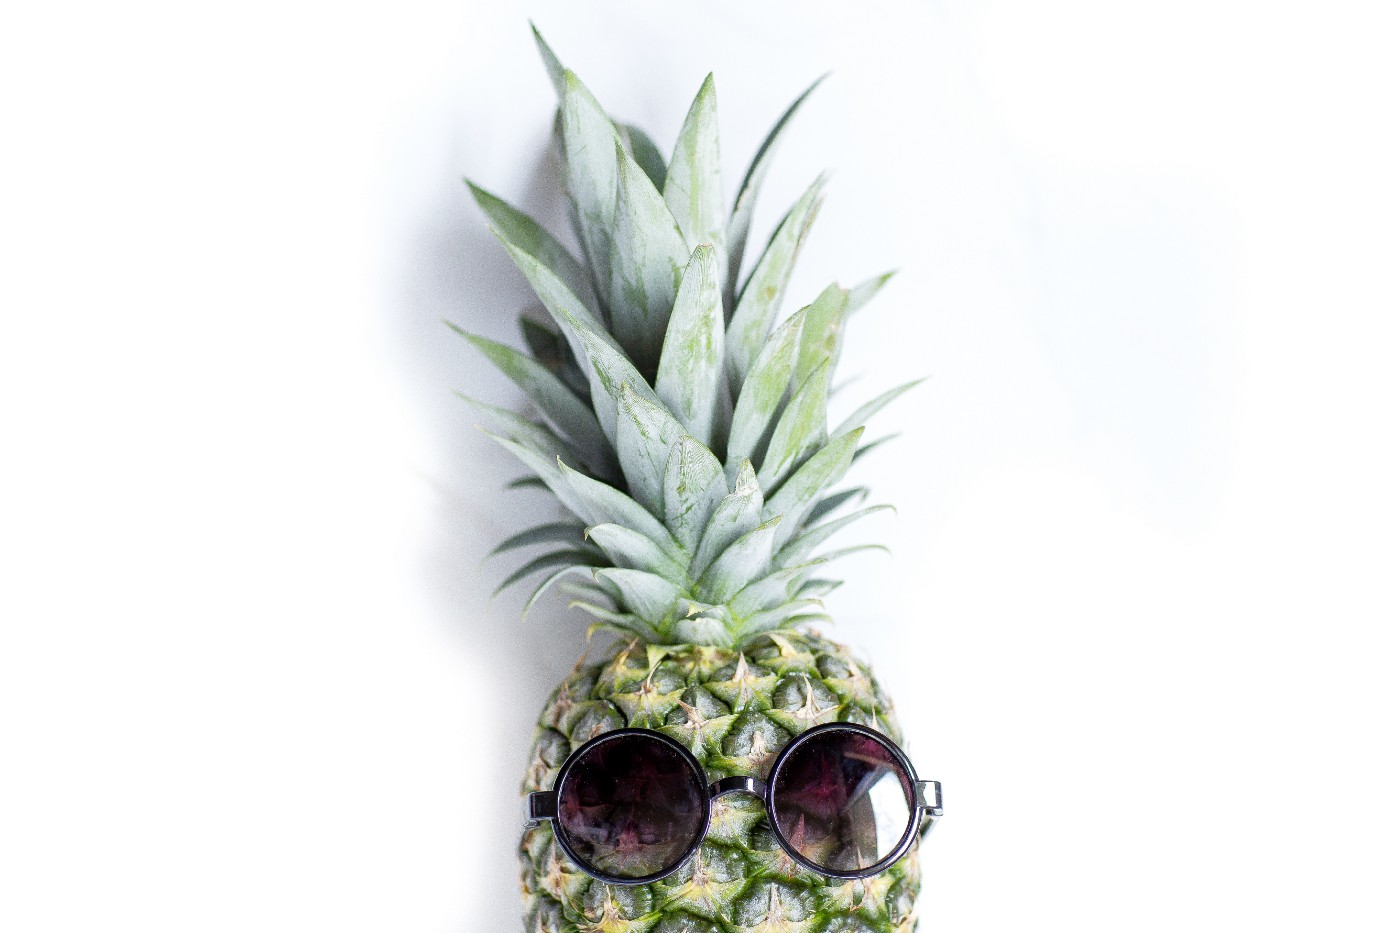 A pineapple with round sunglasses on it, on a white background.